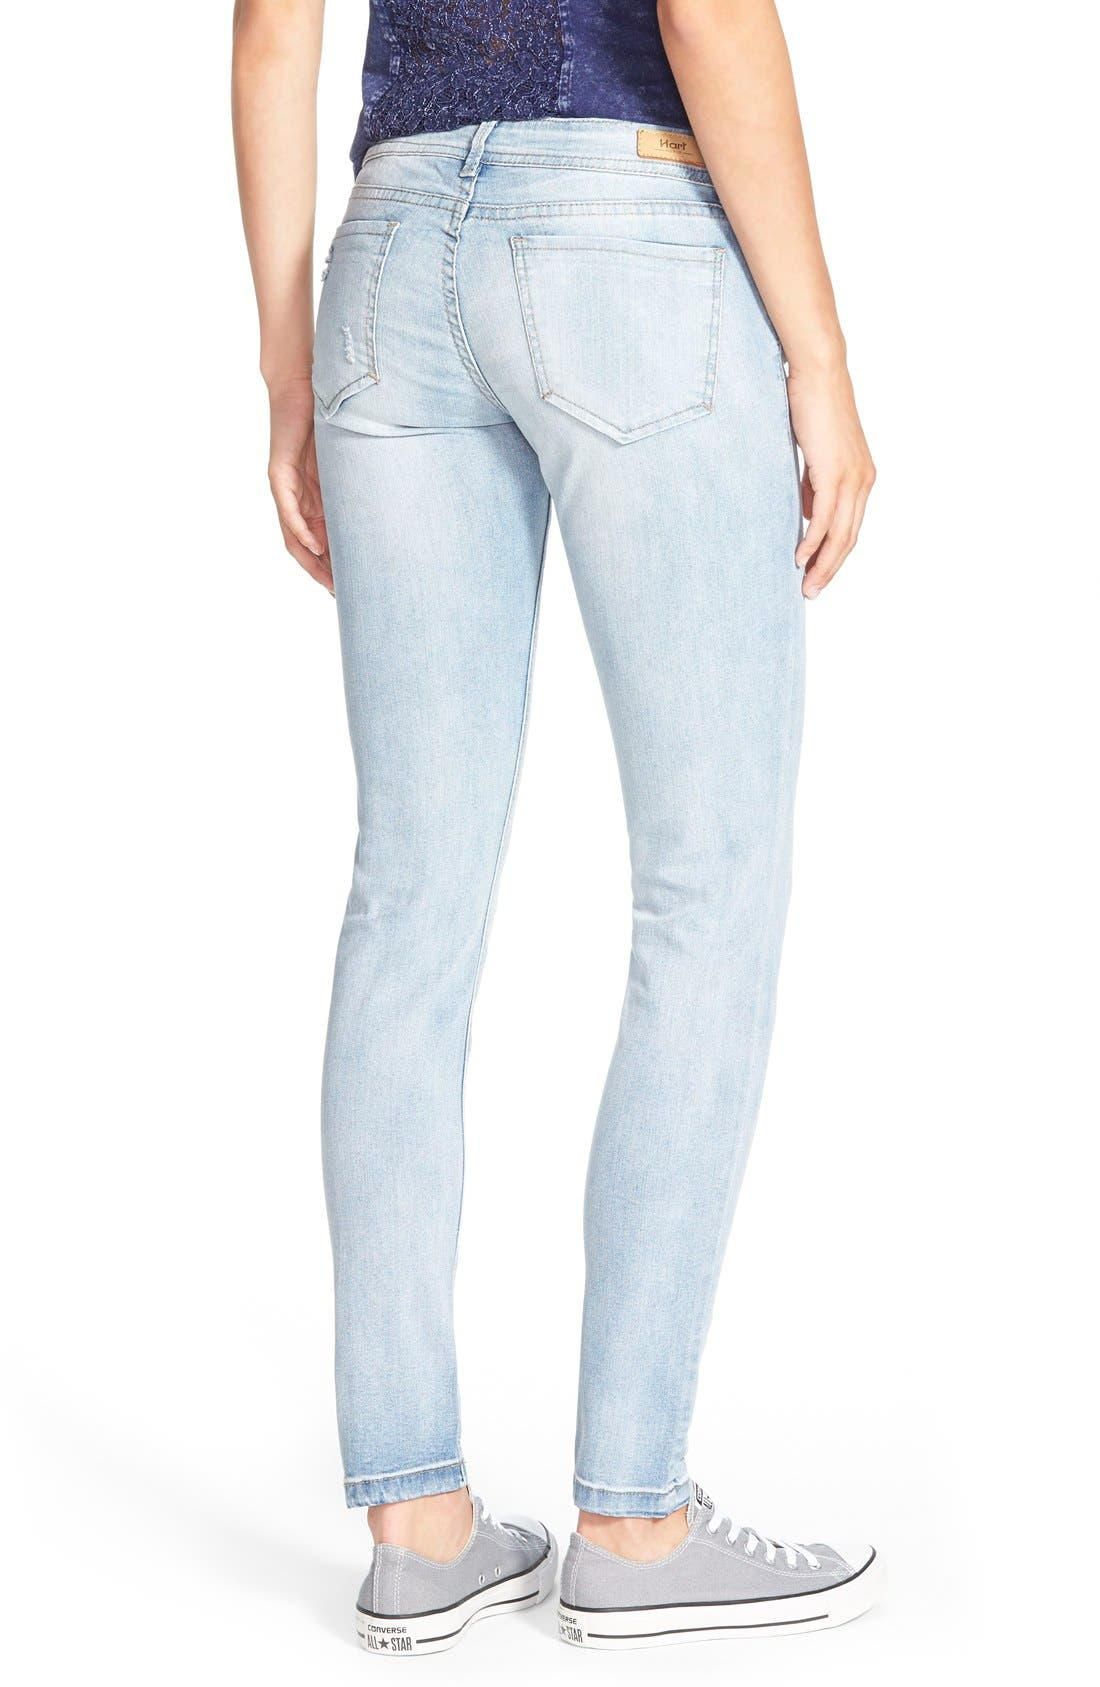 Alternate Image 2  - HART Denim Deconstructed Skinny Jeans (Light)